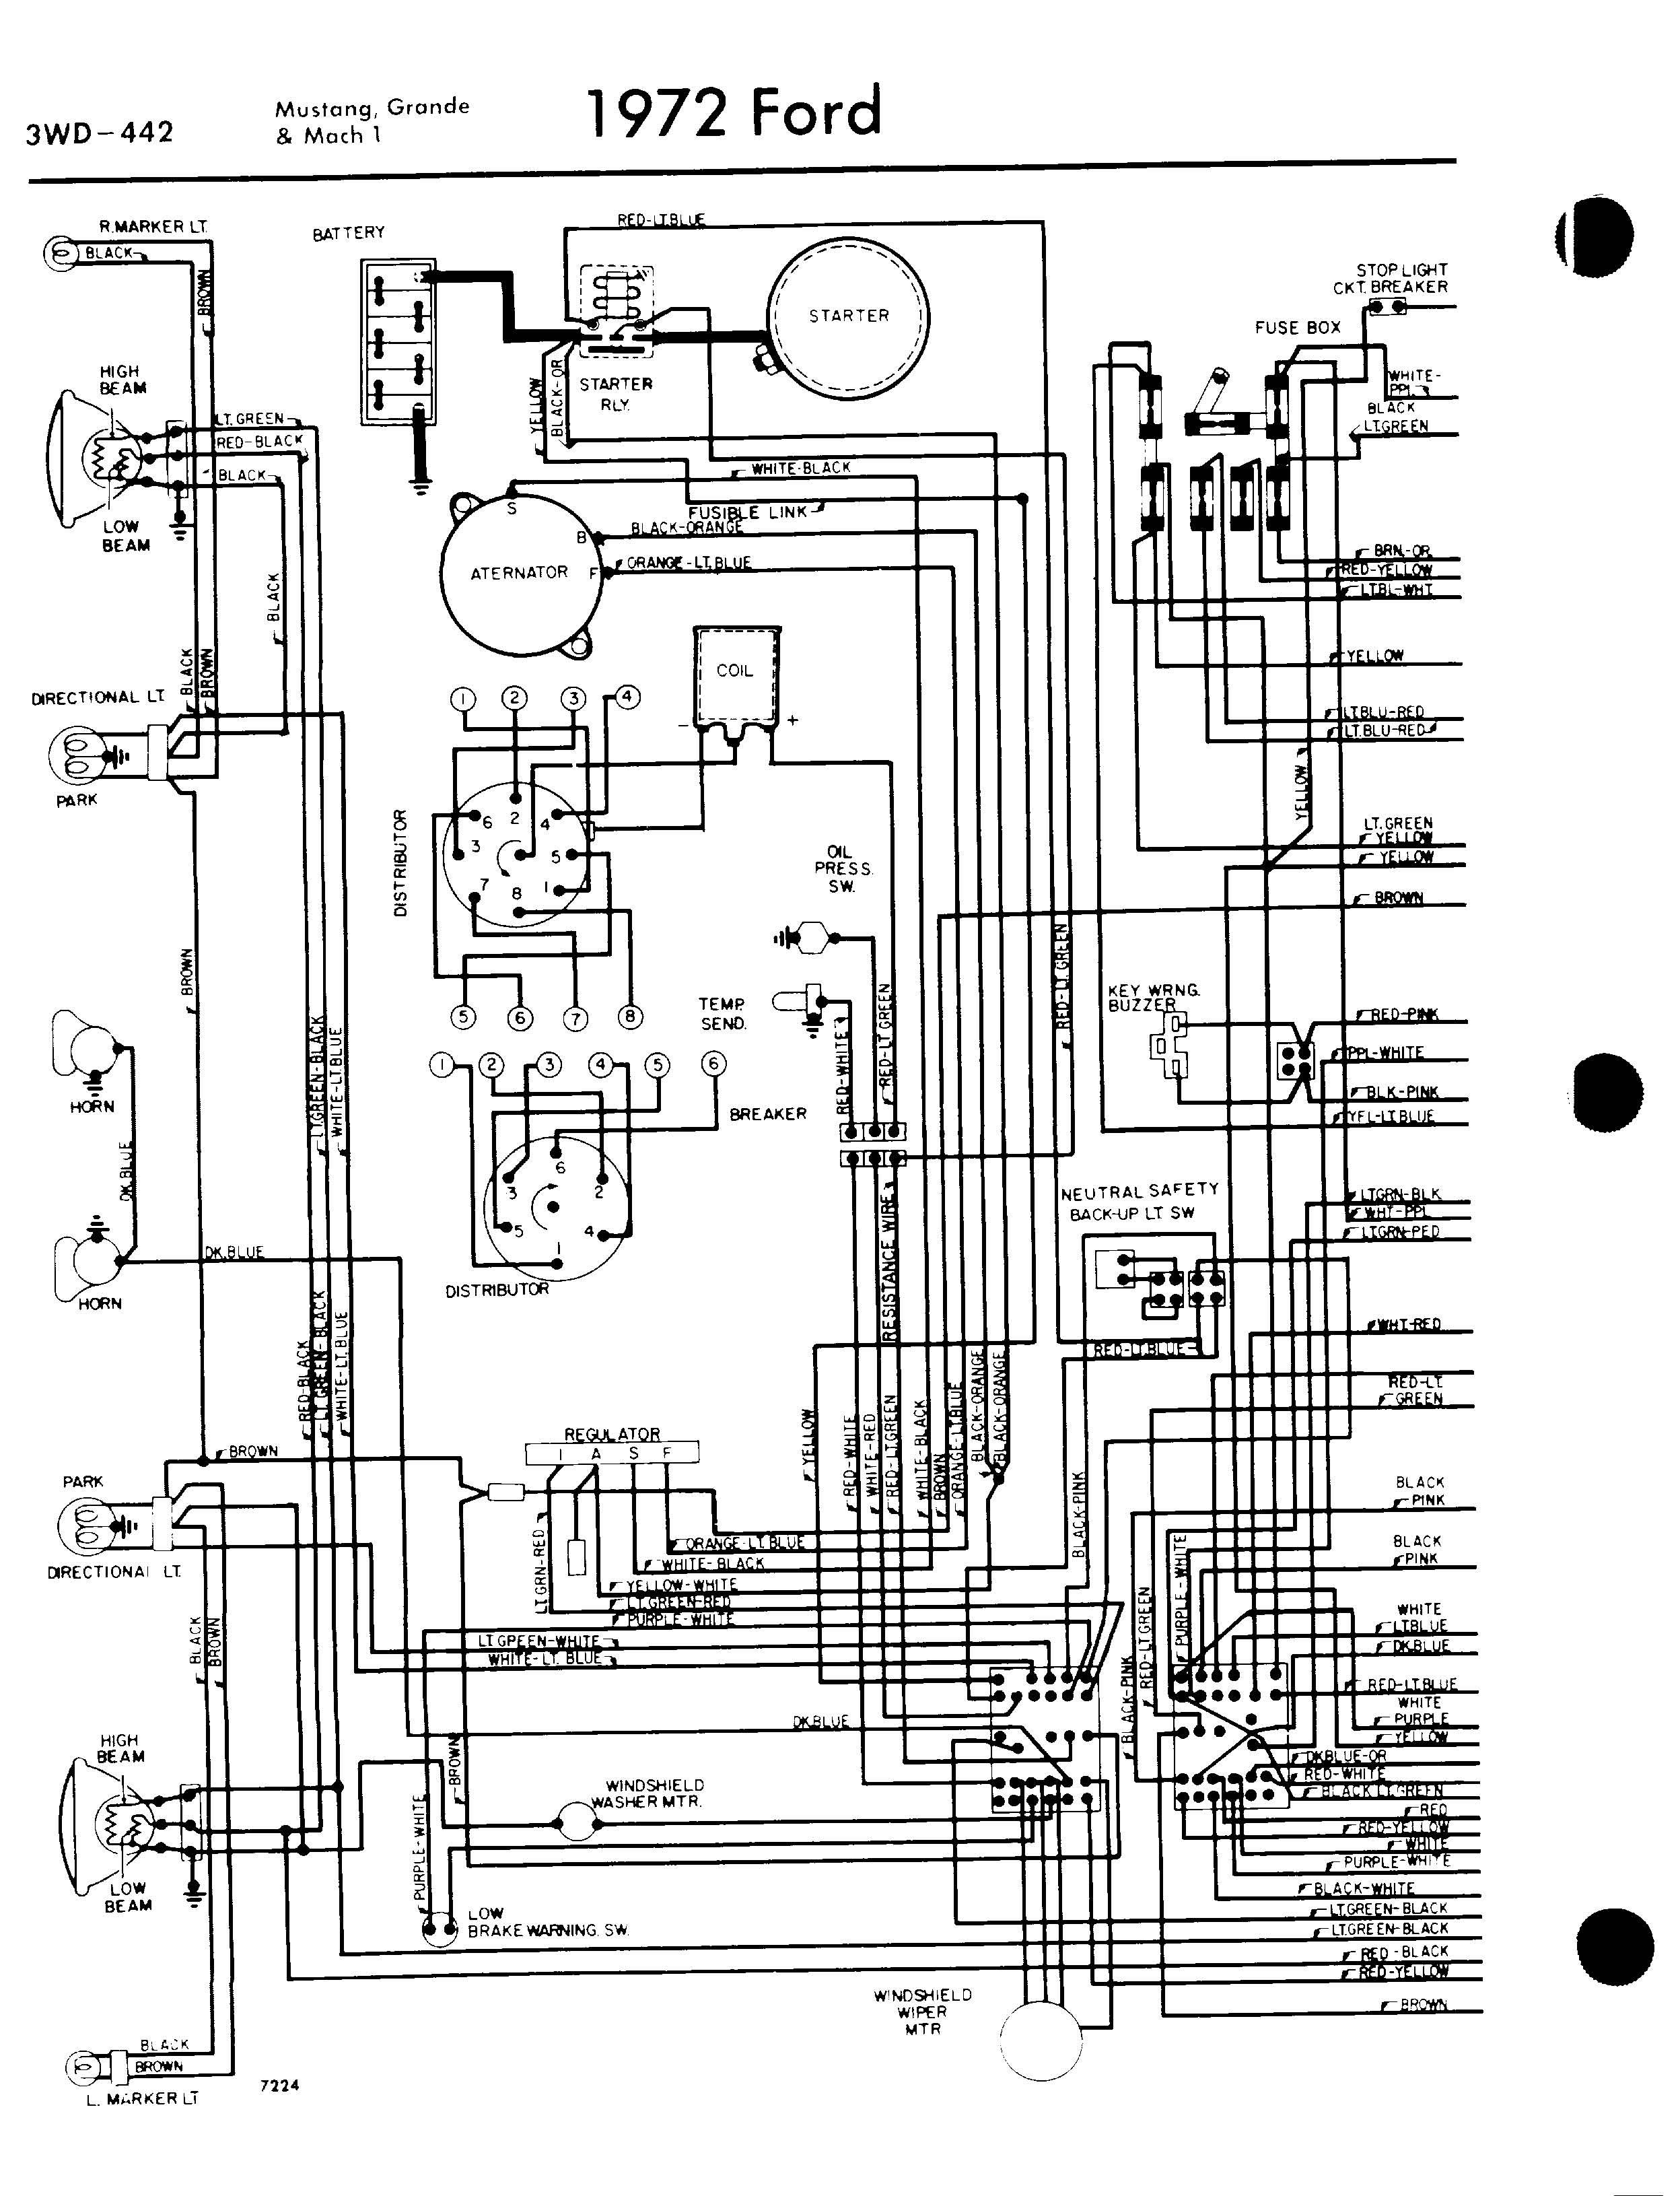 1970 mustang ignition wiring diagram wiring diagrams schematic 1970 mustang wiring diagram wiring diagram data chevy ignition wiring diagram 1970 ford mustang wiring diagram